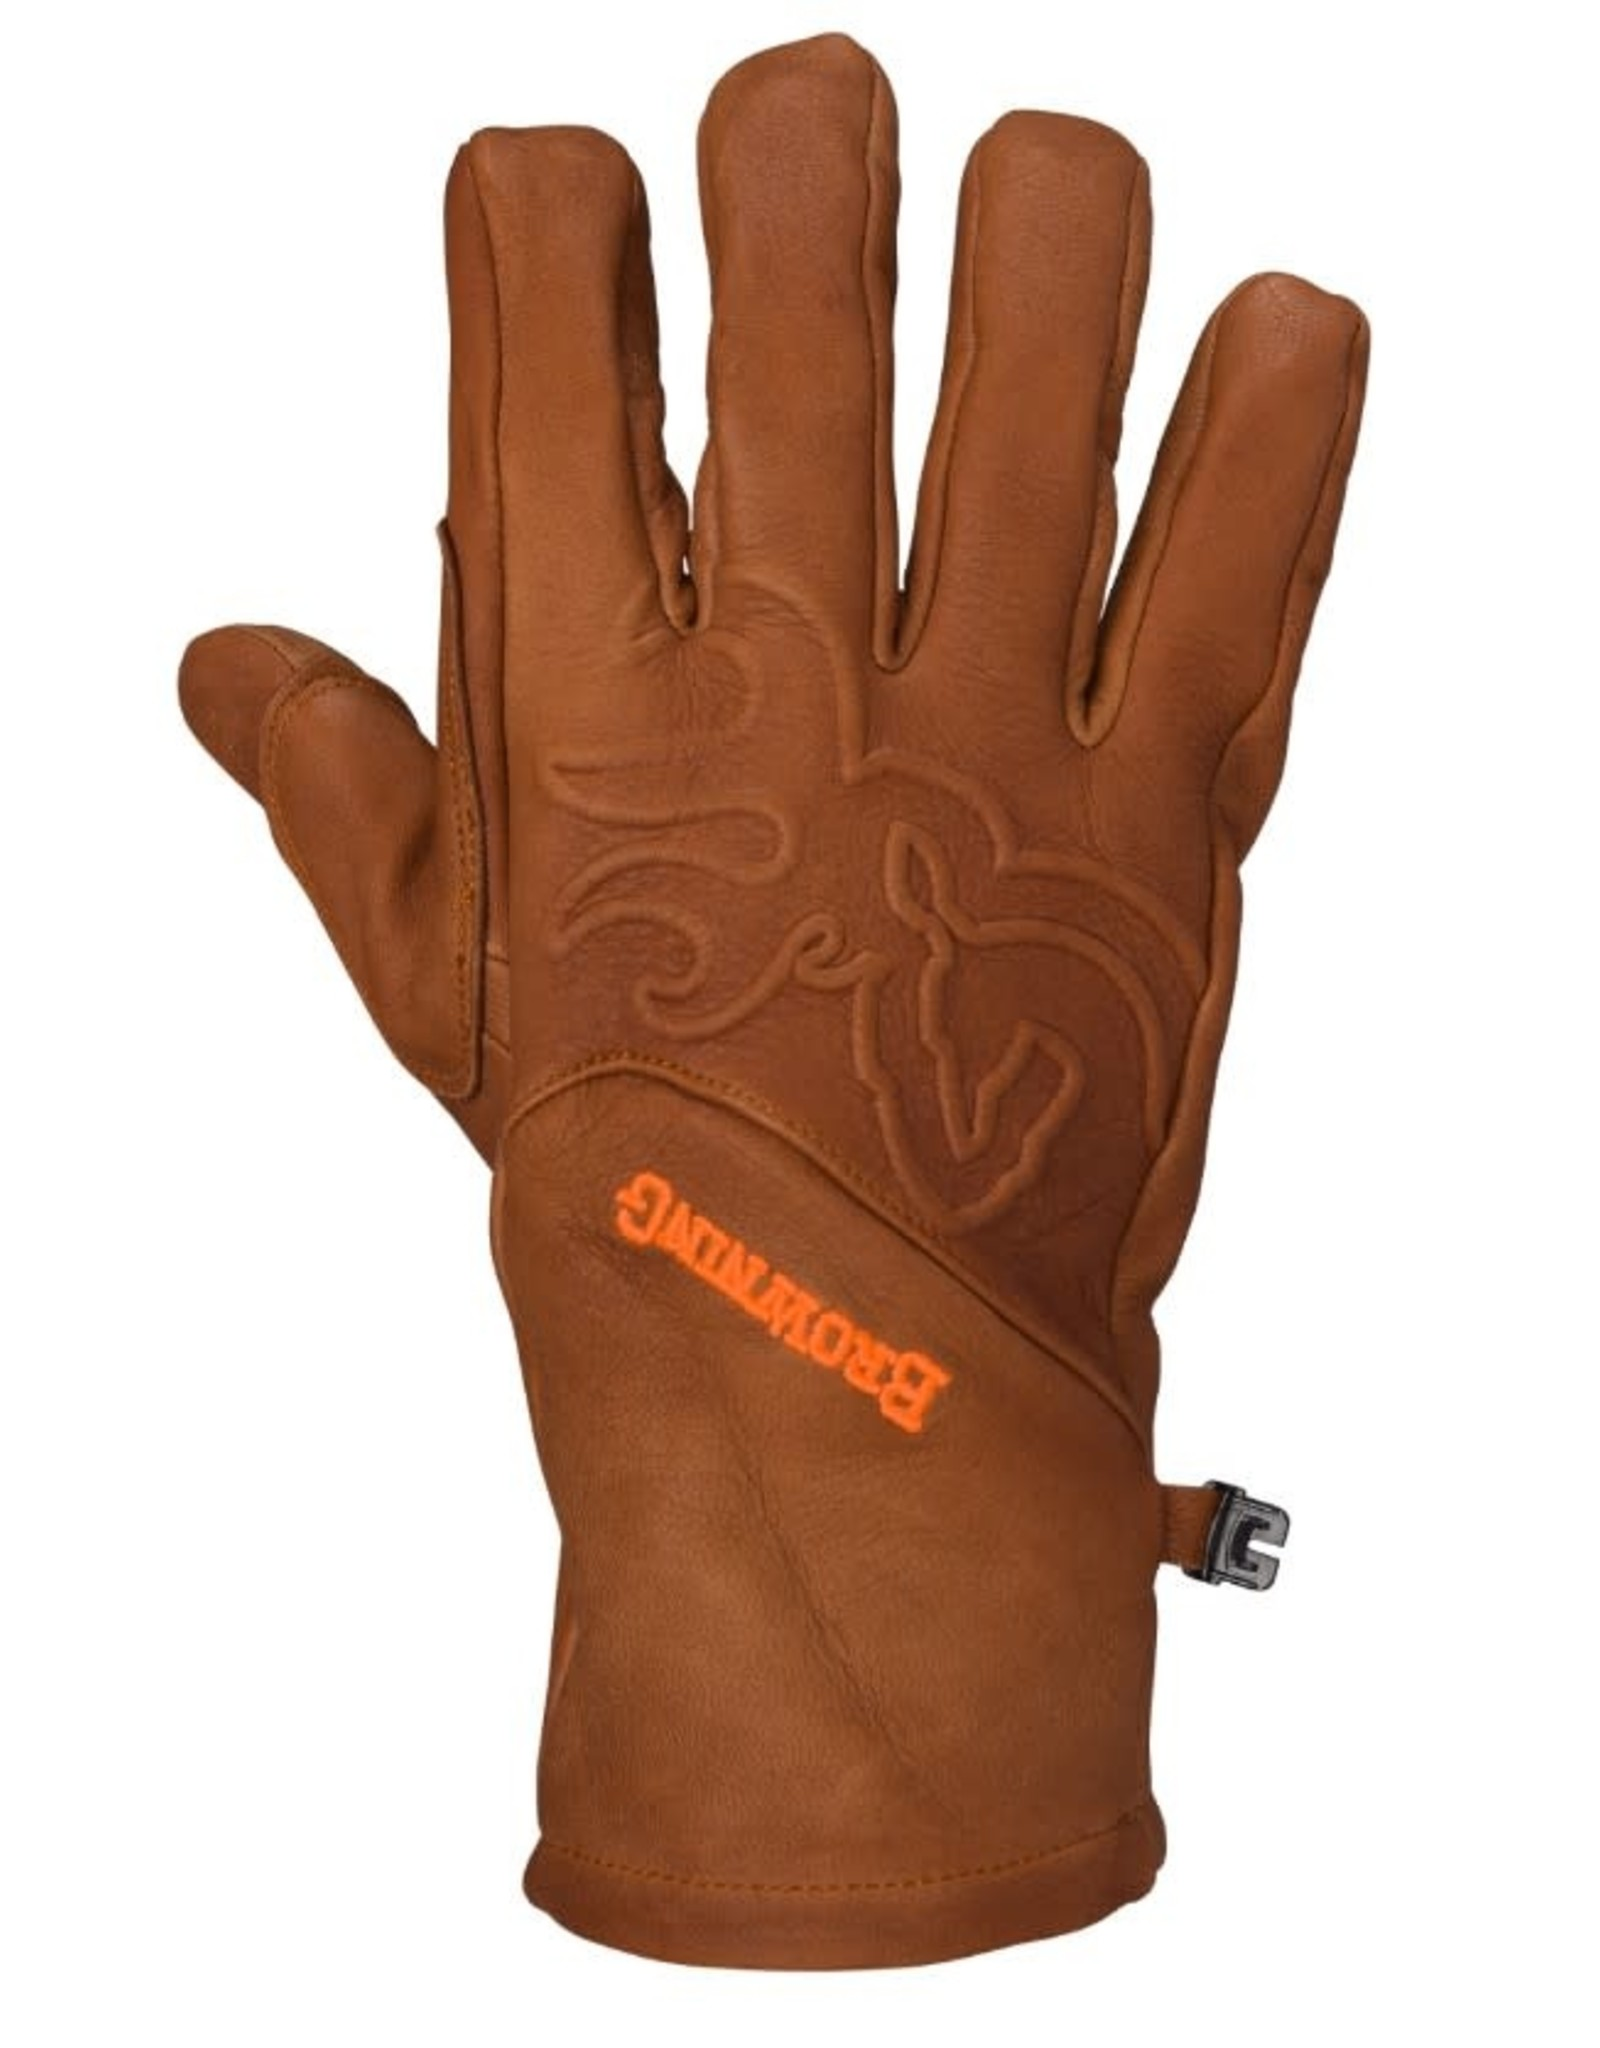 Browning Copy of Browning Shooters Glove Deerskin Upland - SM